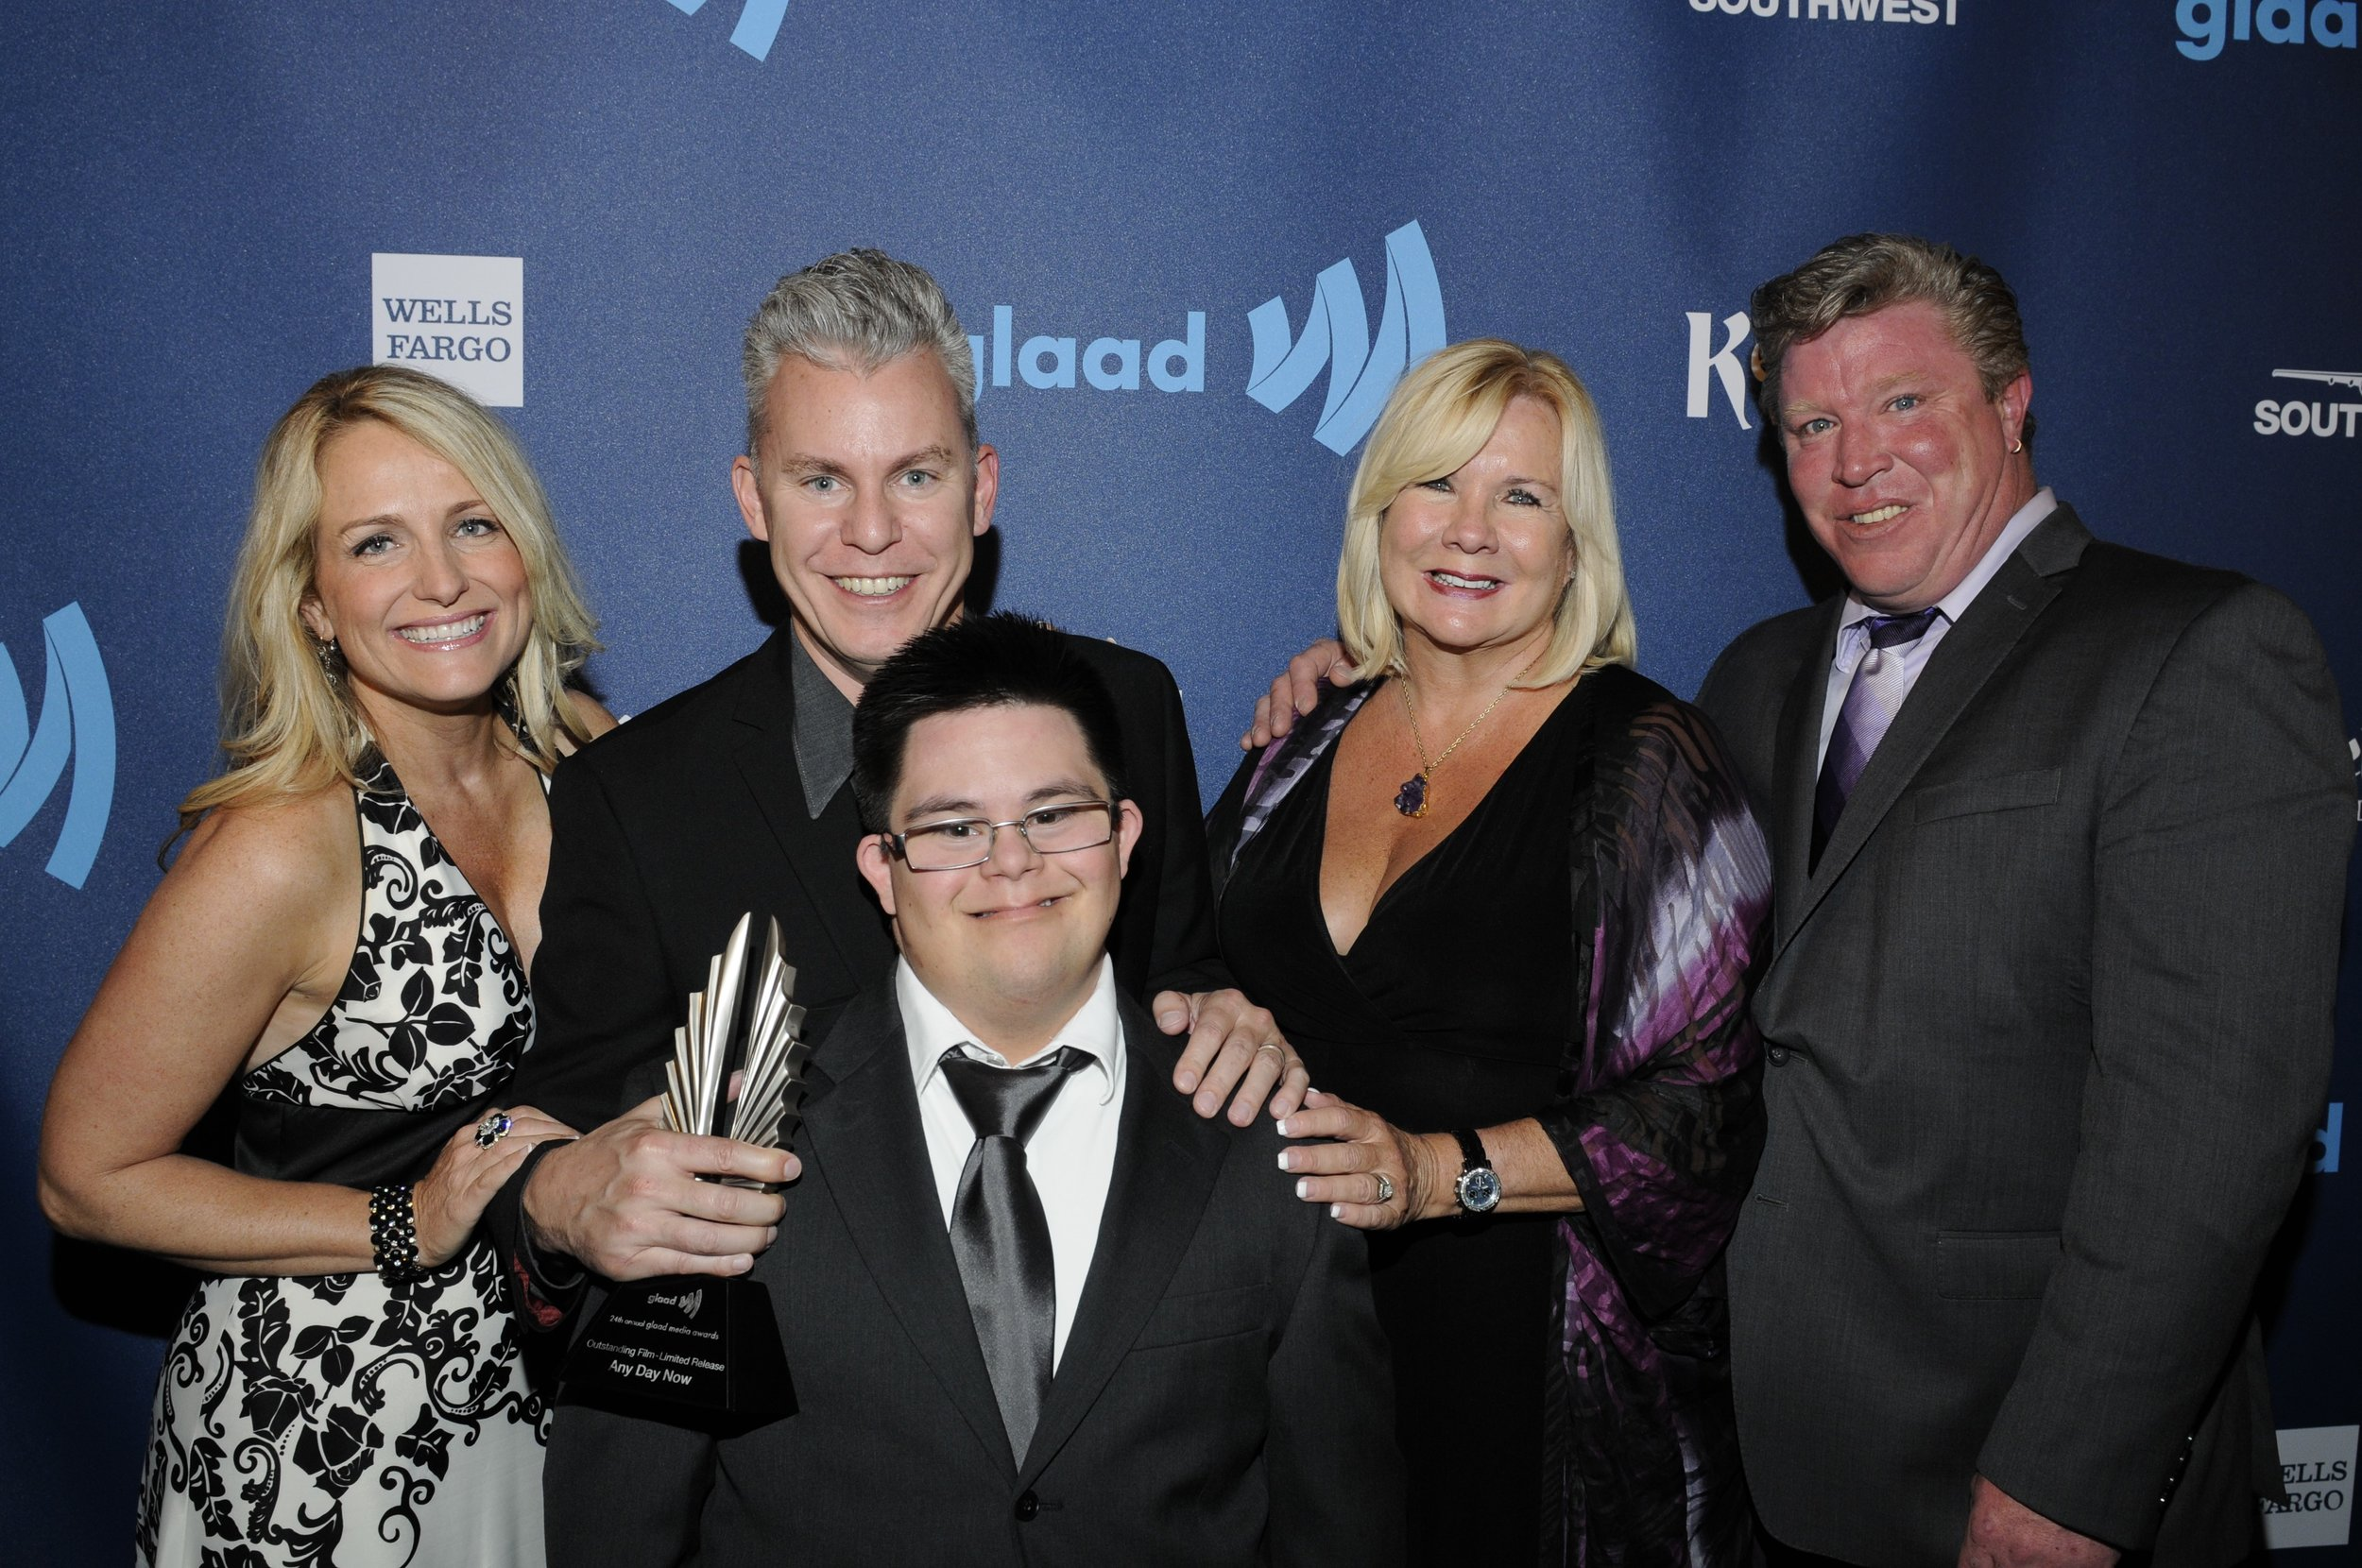 2013 Glaad Award Winners - Red Carpet.jpg